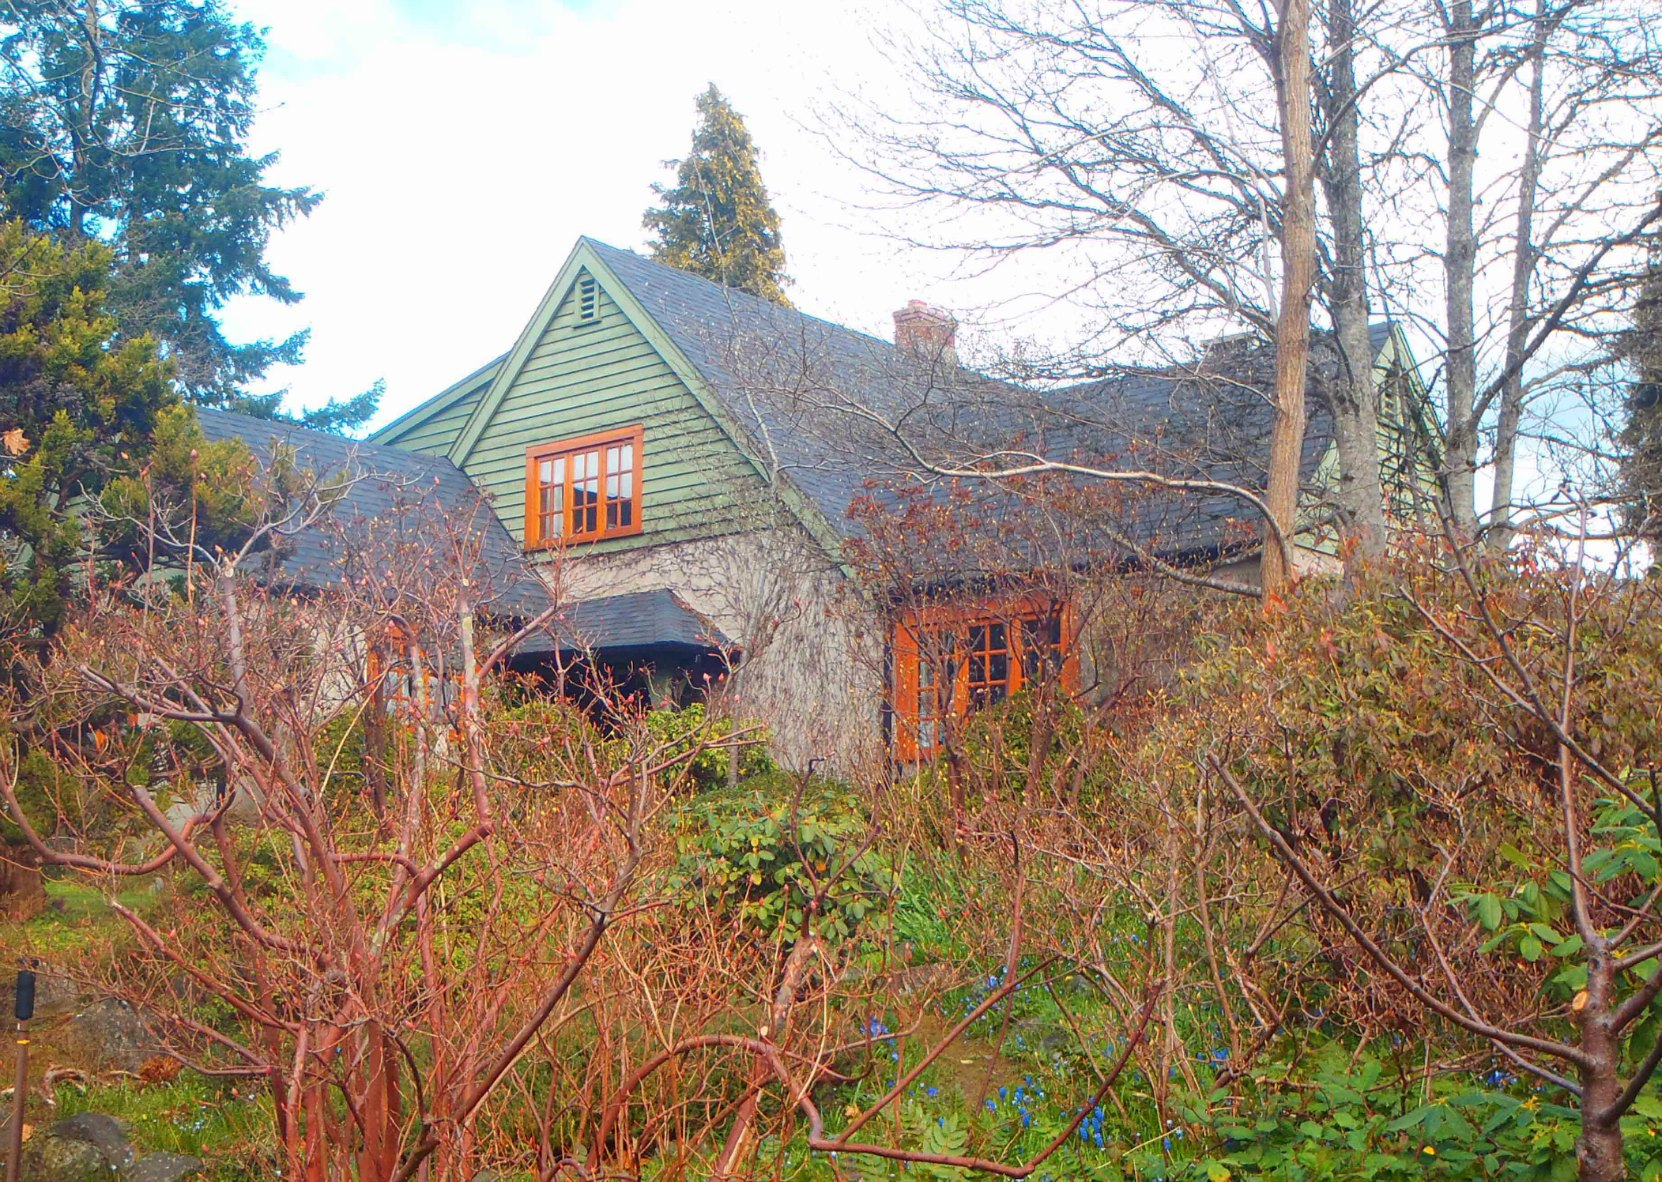 Claude Green built this house on Grieve Road, North Cowichan for his family.